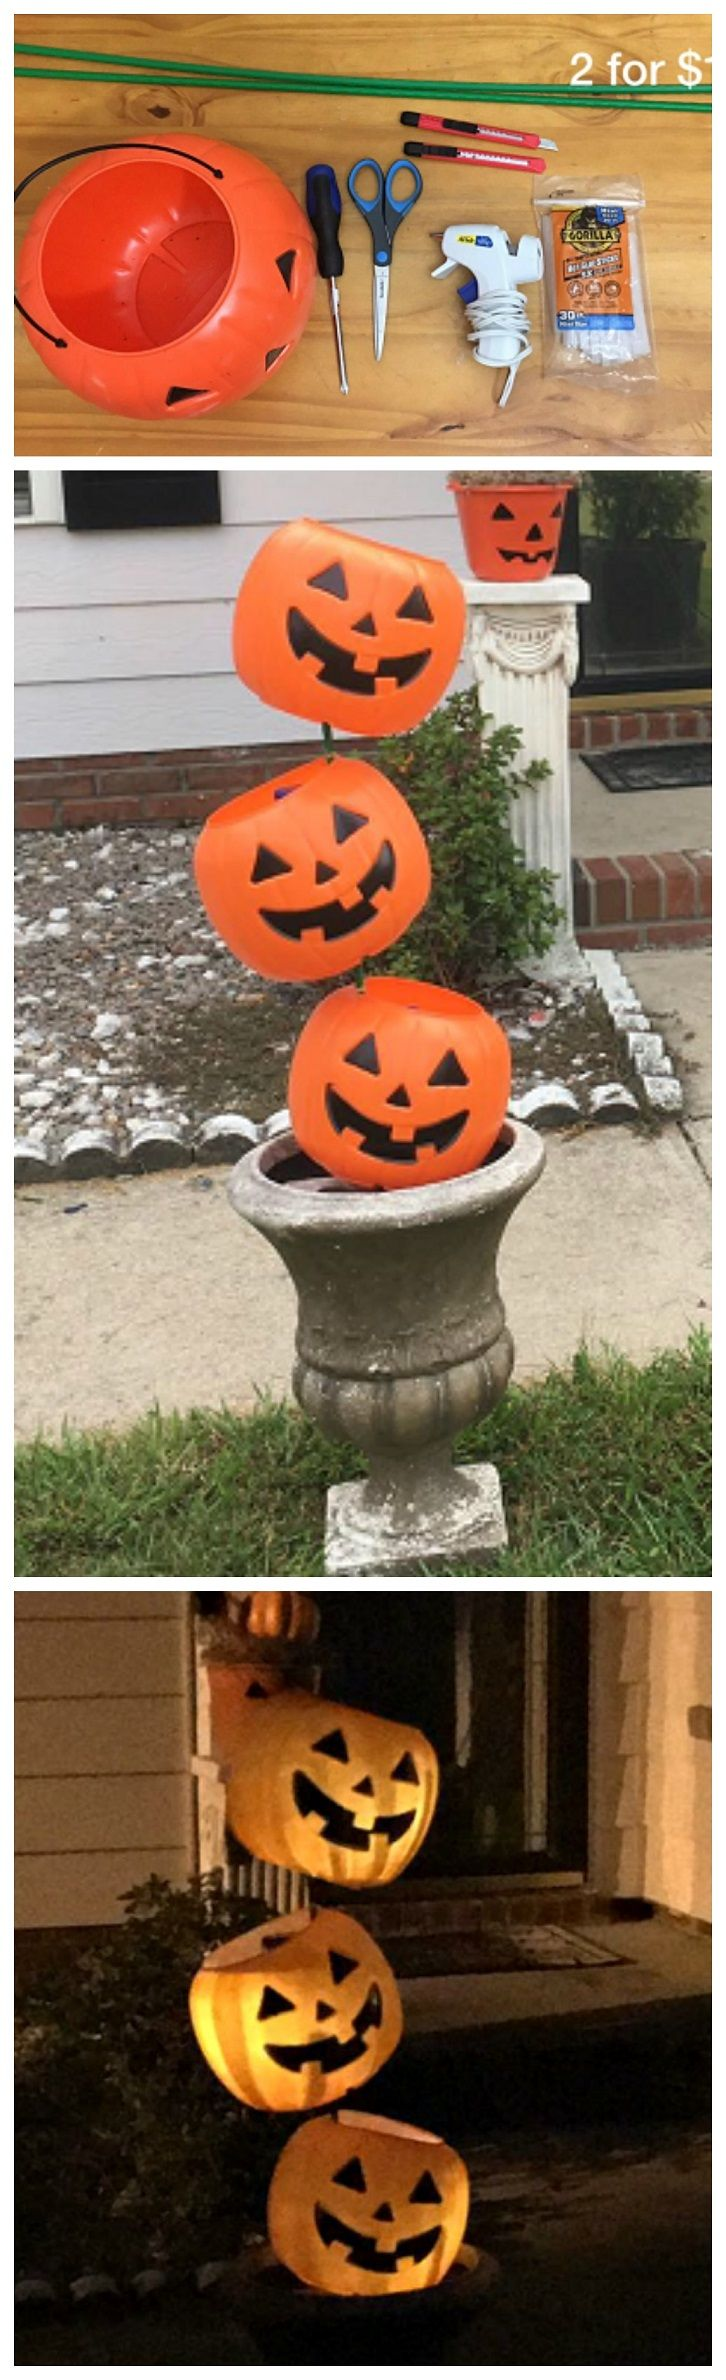 make a plastic pumpkin pail tipsy decoration for halloween such a cheap and easy craft - Fun Halloween Decorations Homemade